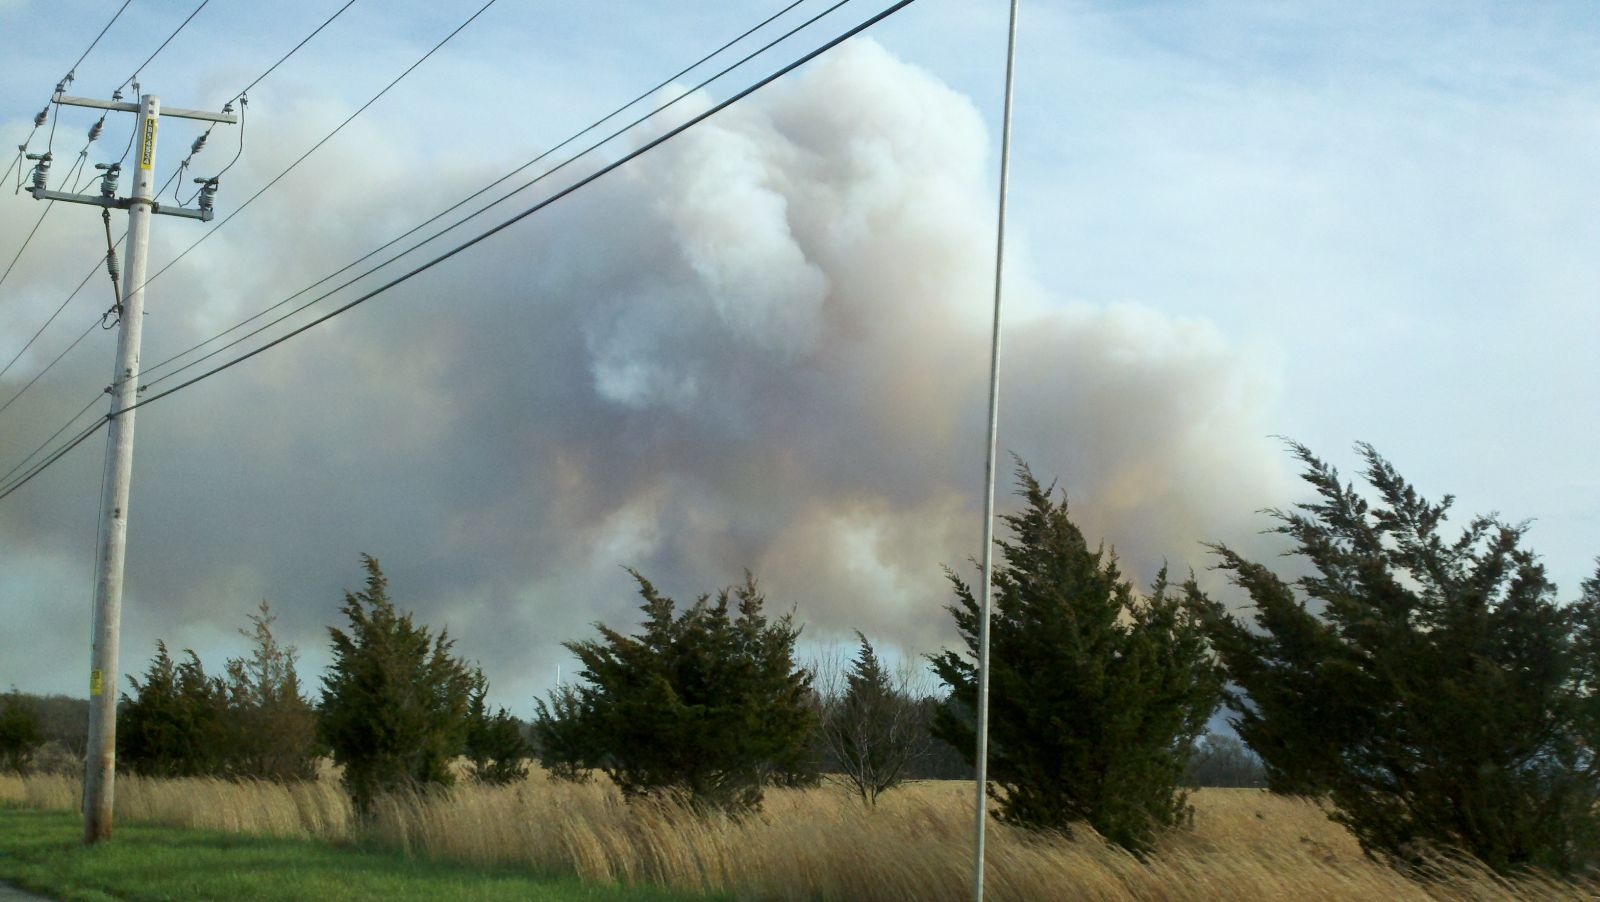 April 9th 2012 Suffolk County Wildfire Image